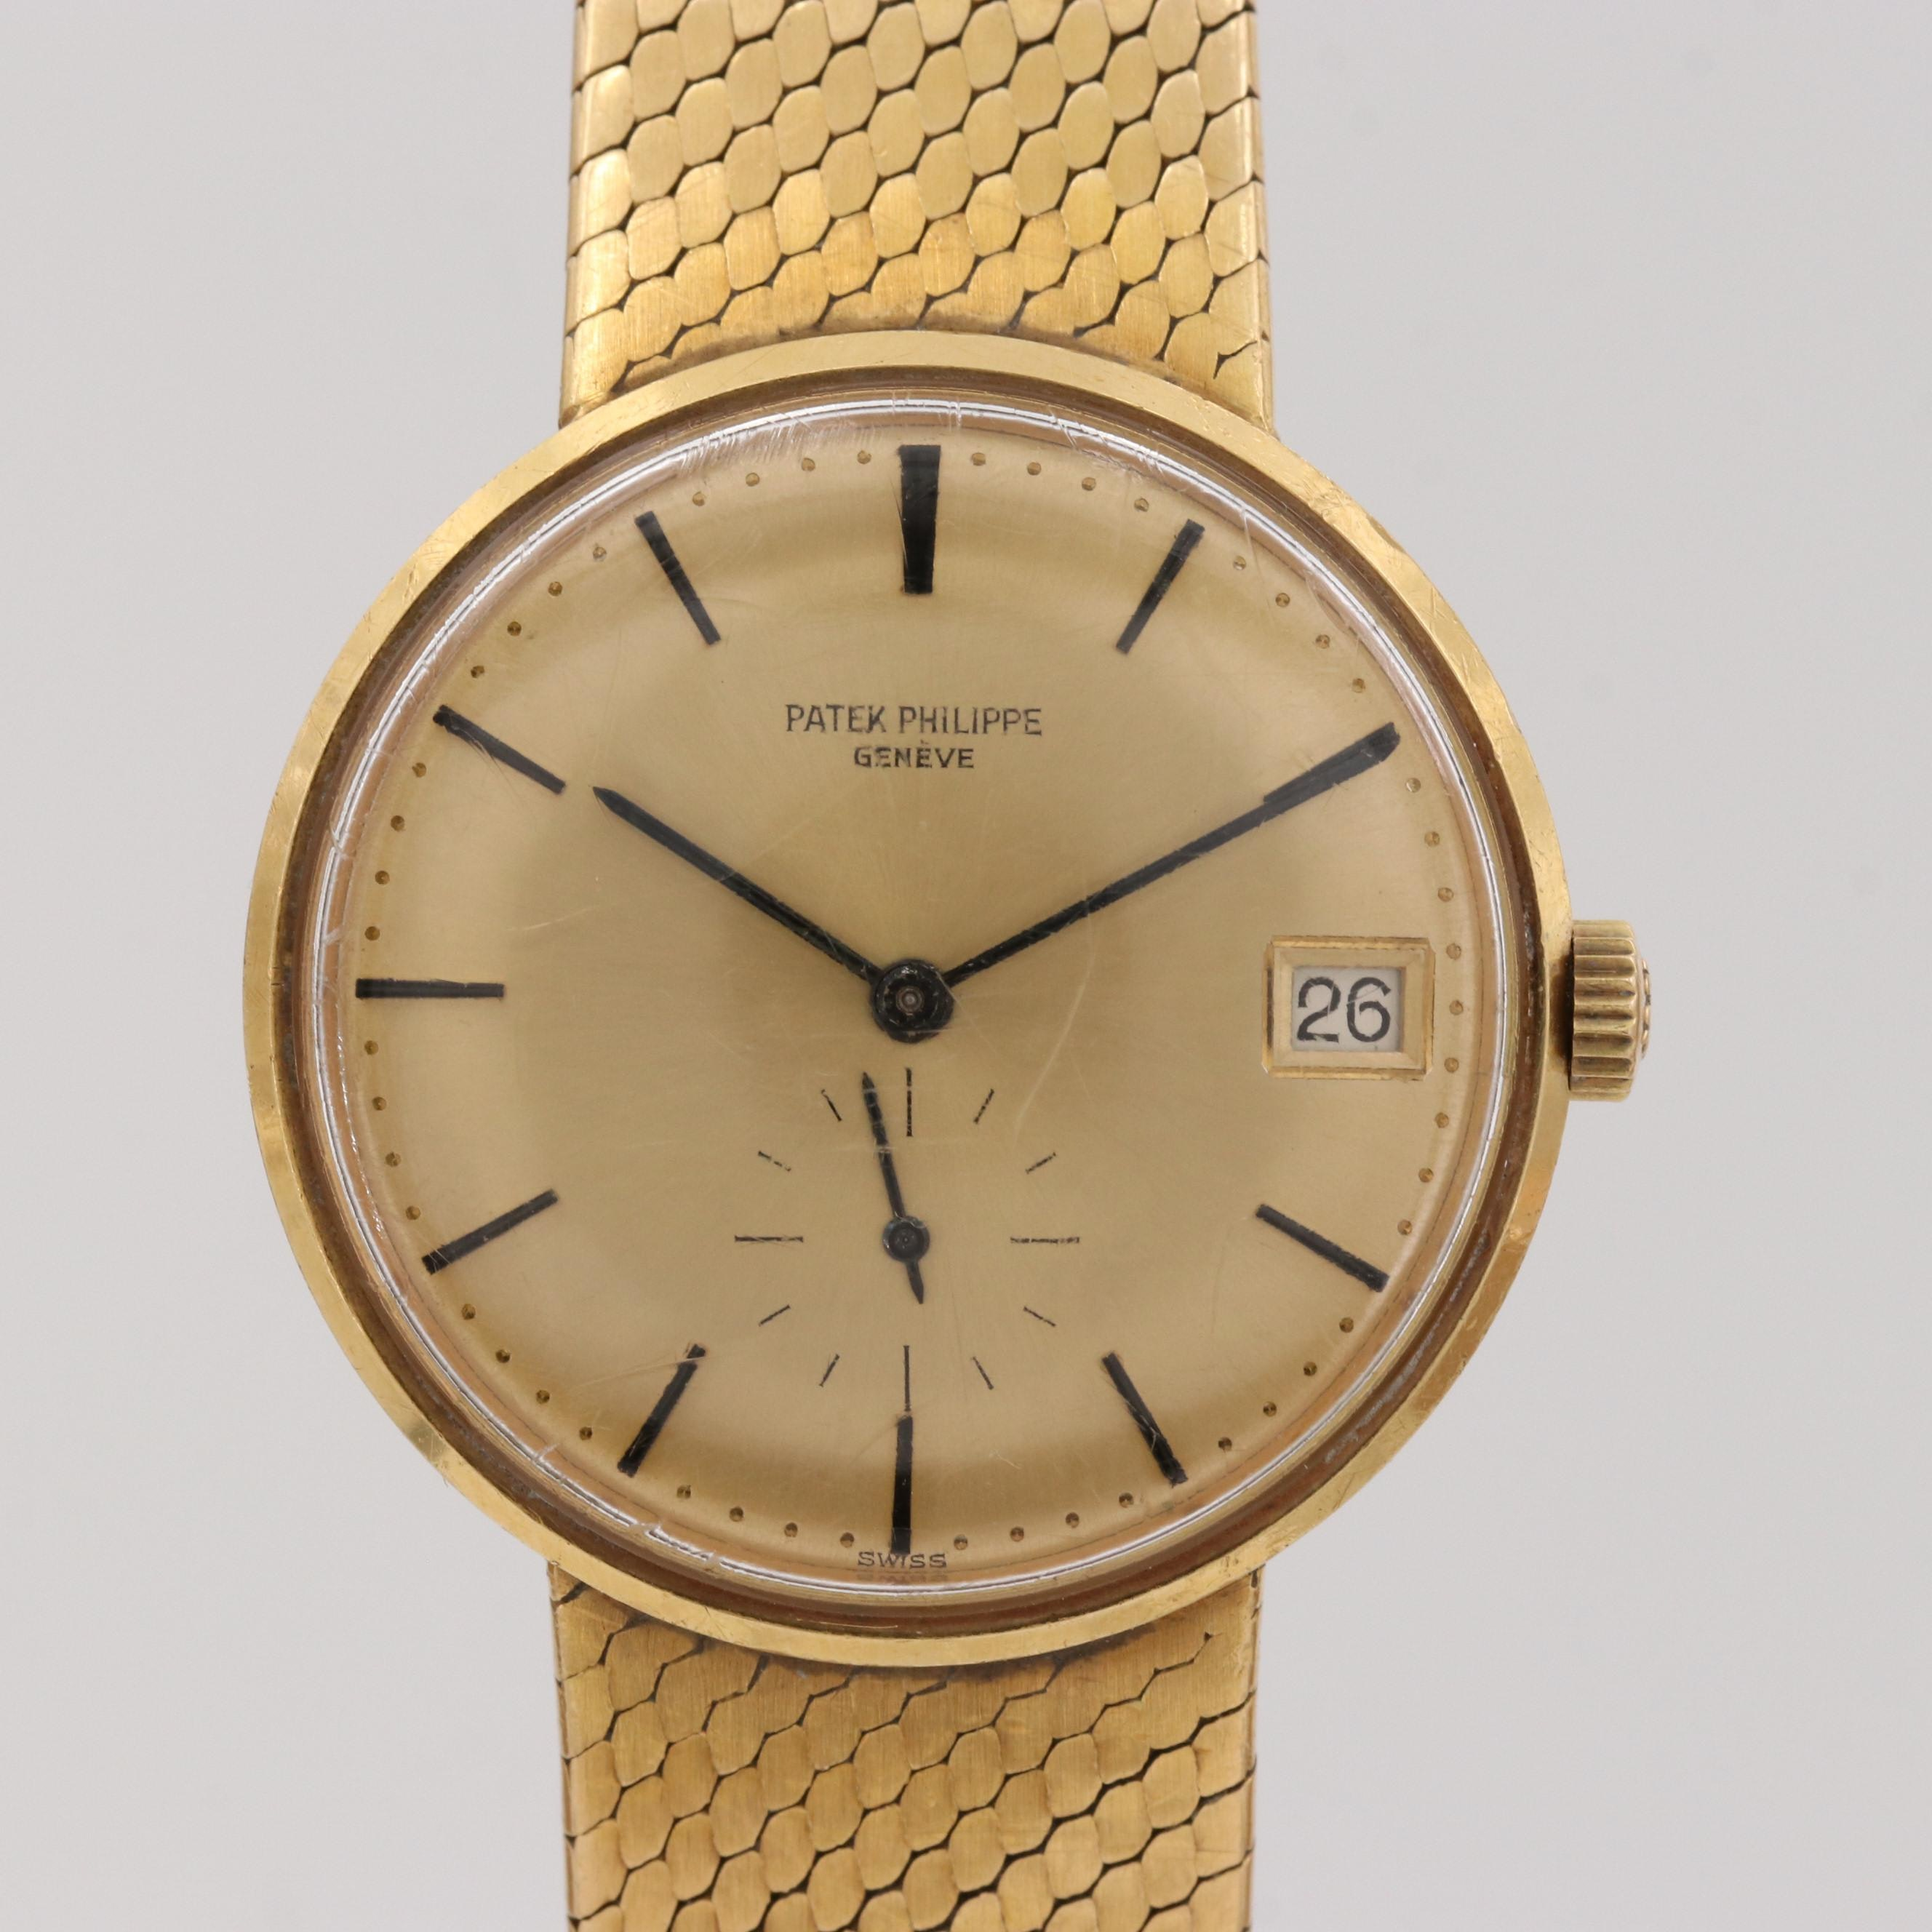 Vintage Patek Philippe Calatrava 18k Yellow Gold Automatic Wristwatch